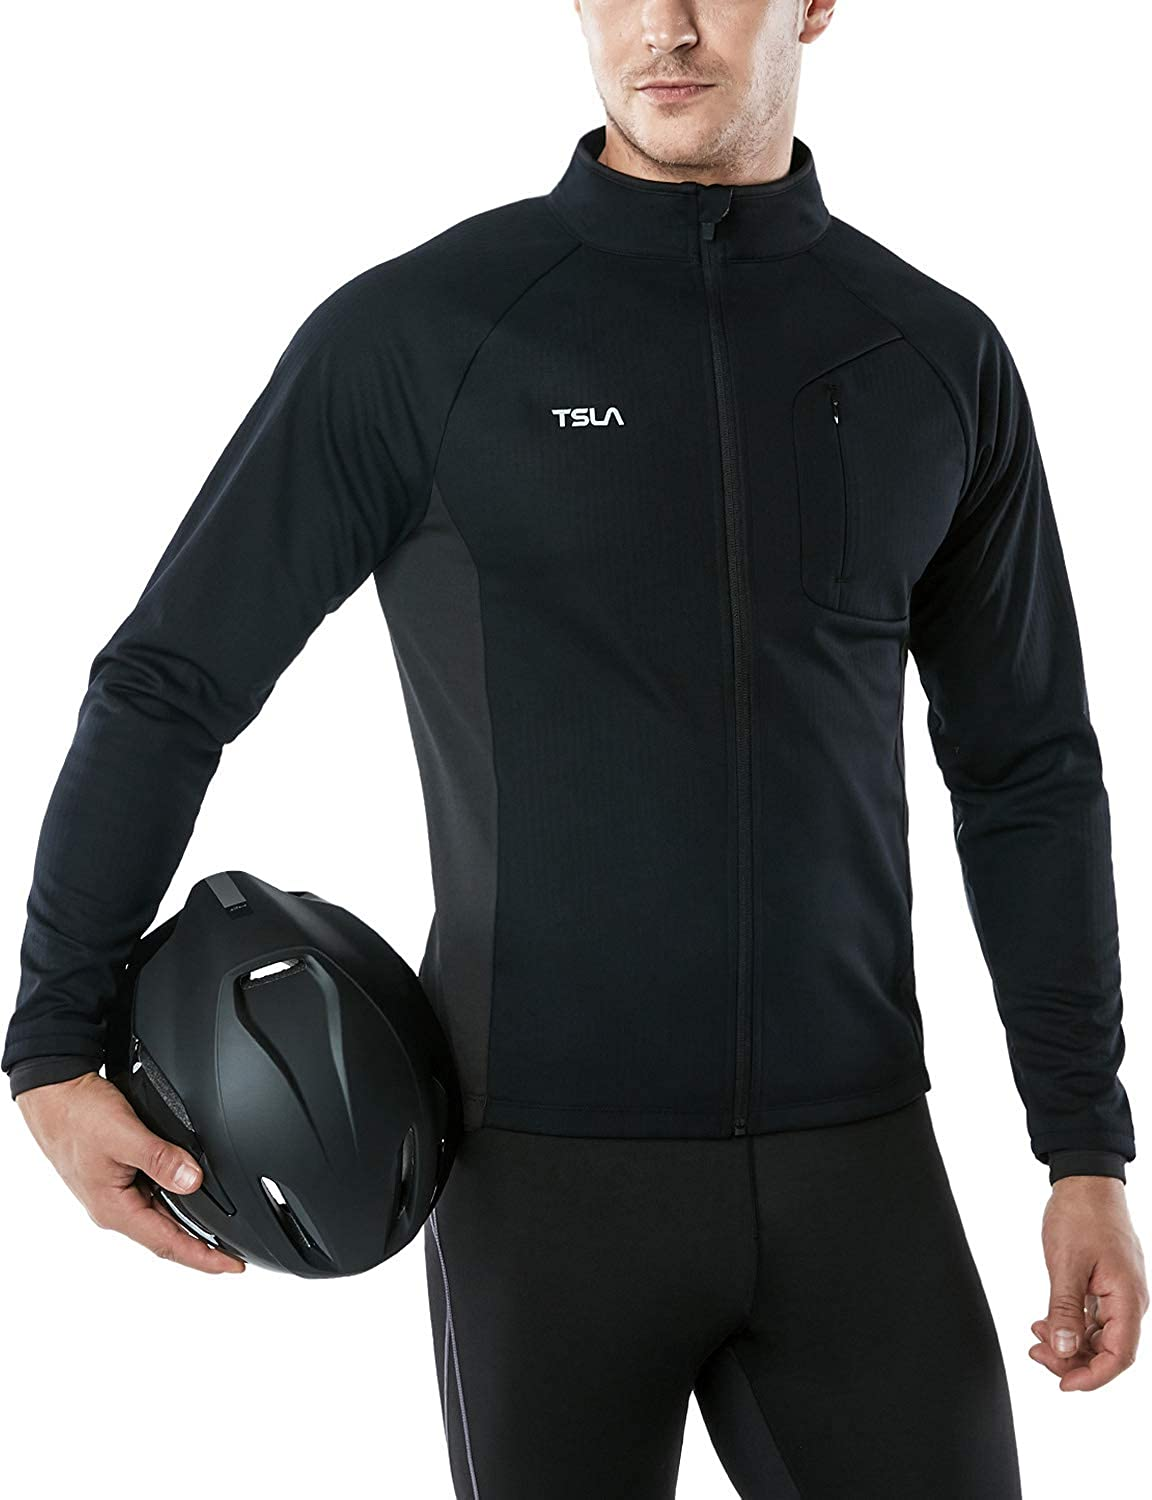 TSLA Men's Winter Cycling 特売 Jackets Weather 100%品質保証! Running Cold Workout